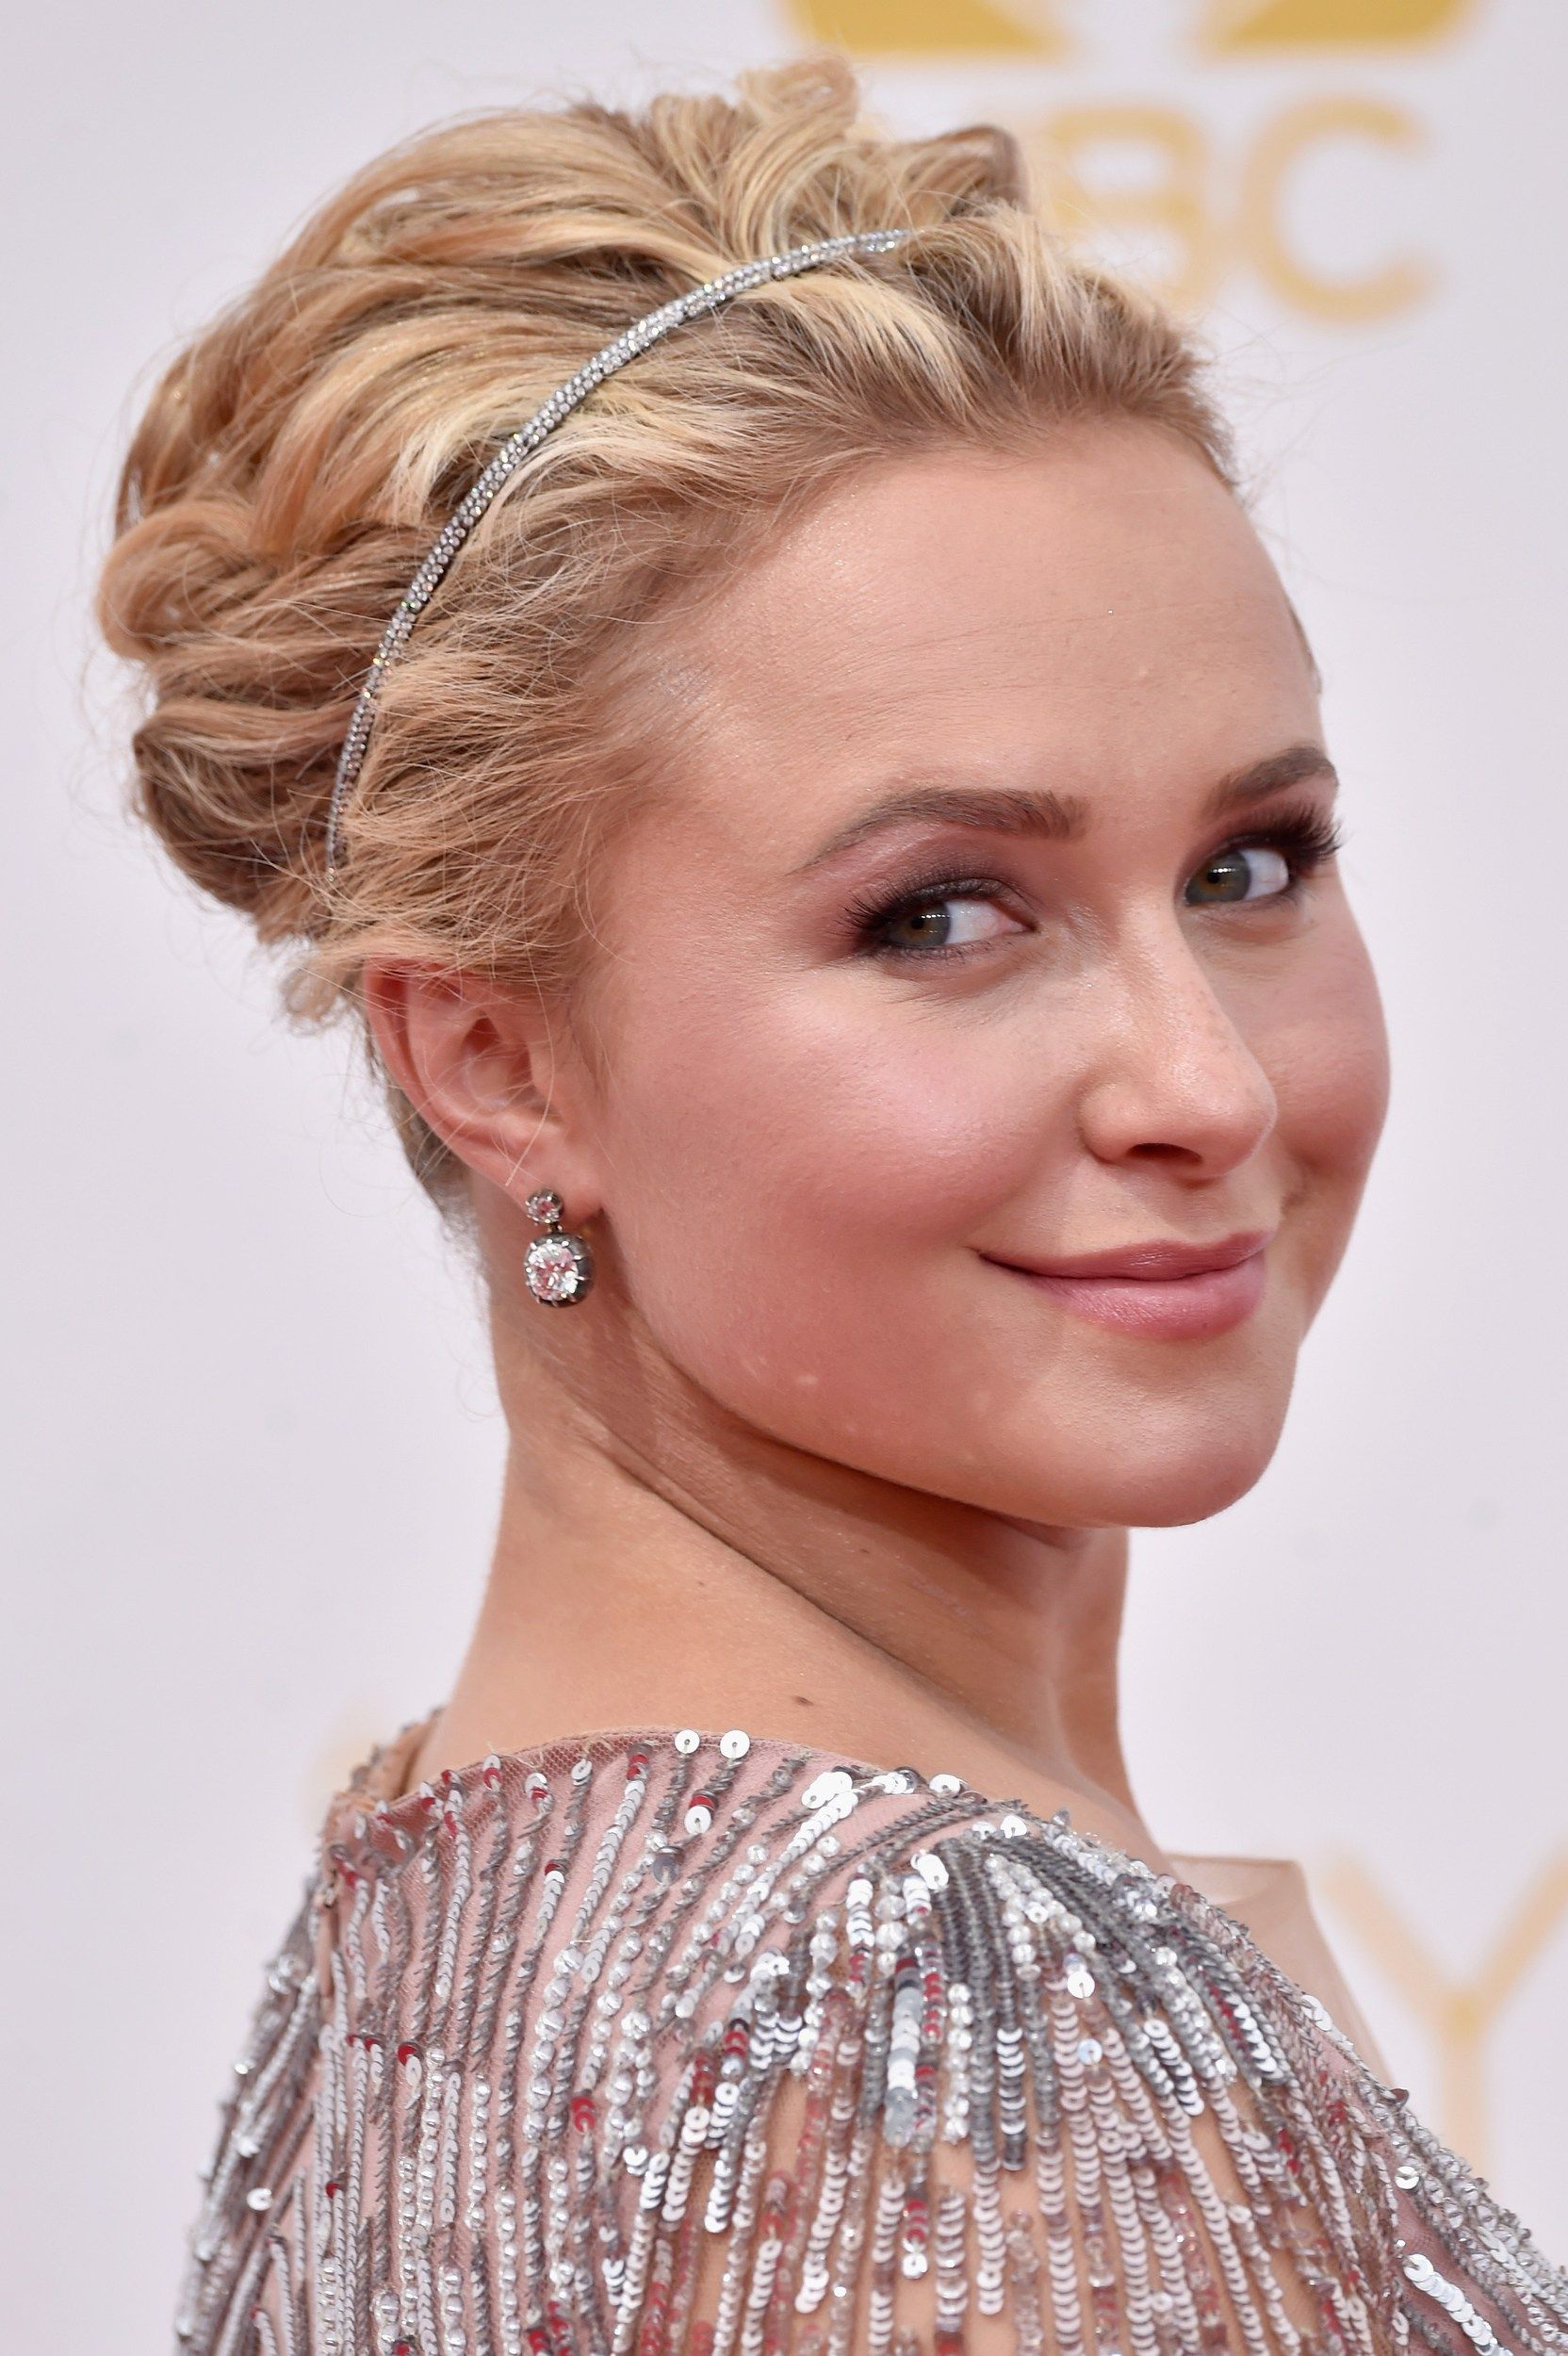 Hayden+Panettiere+wavy+updo+for+short+hair